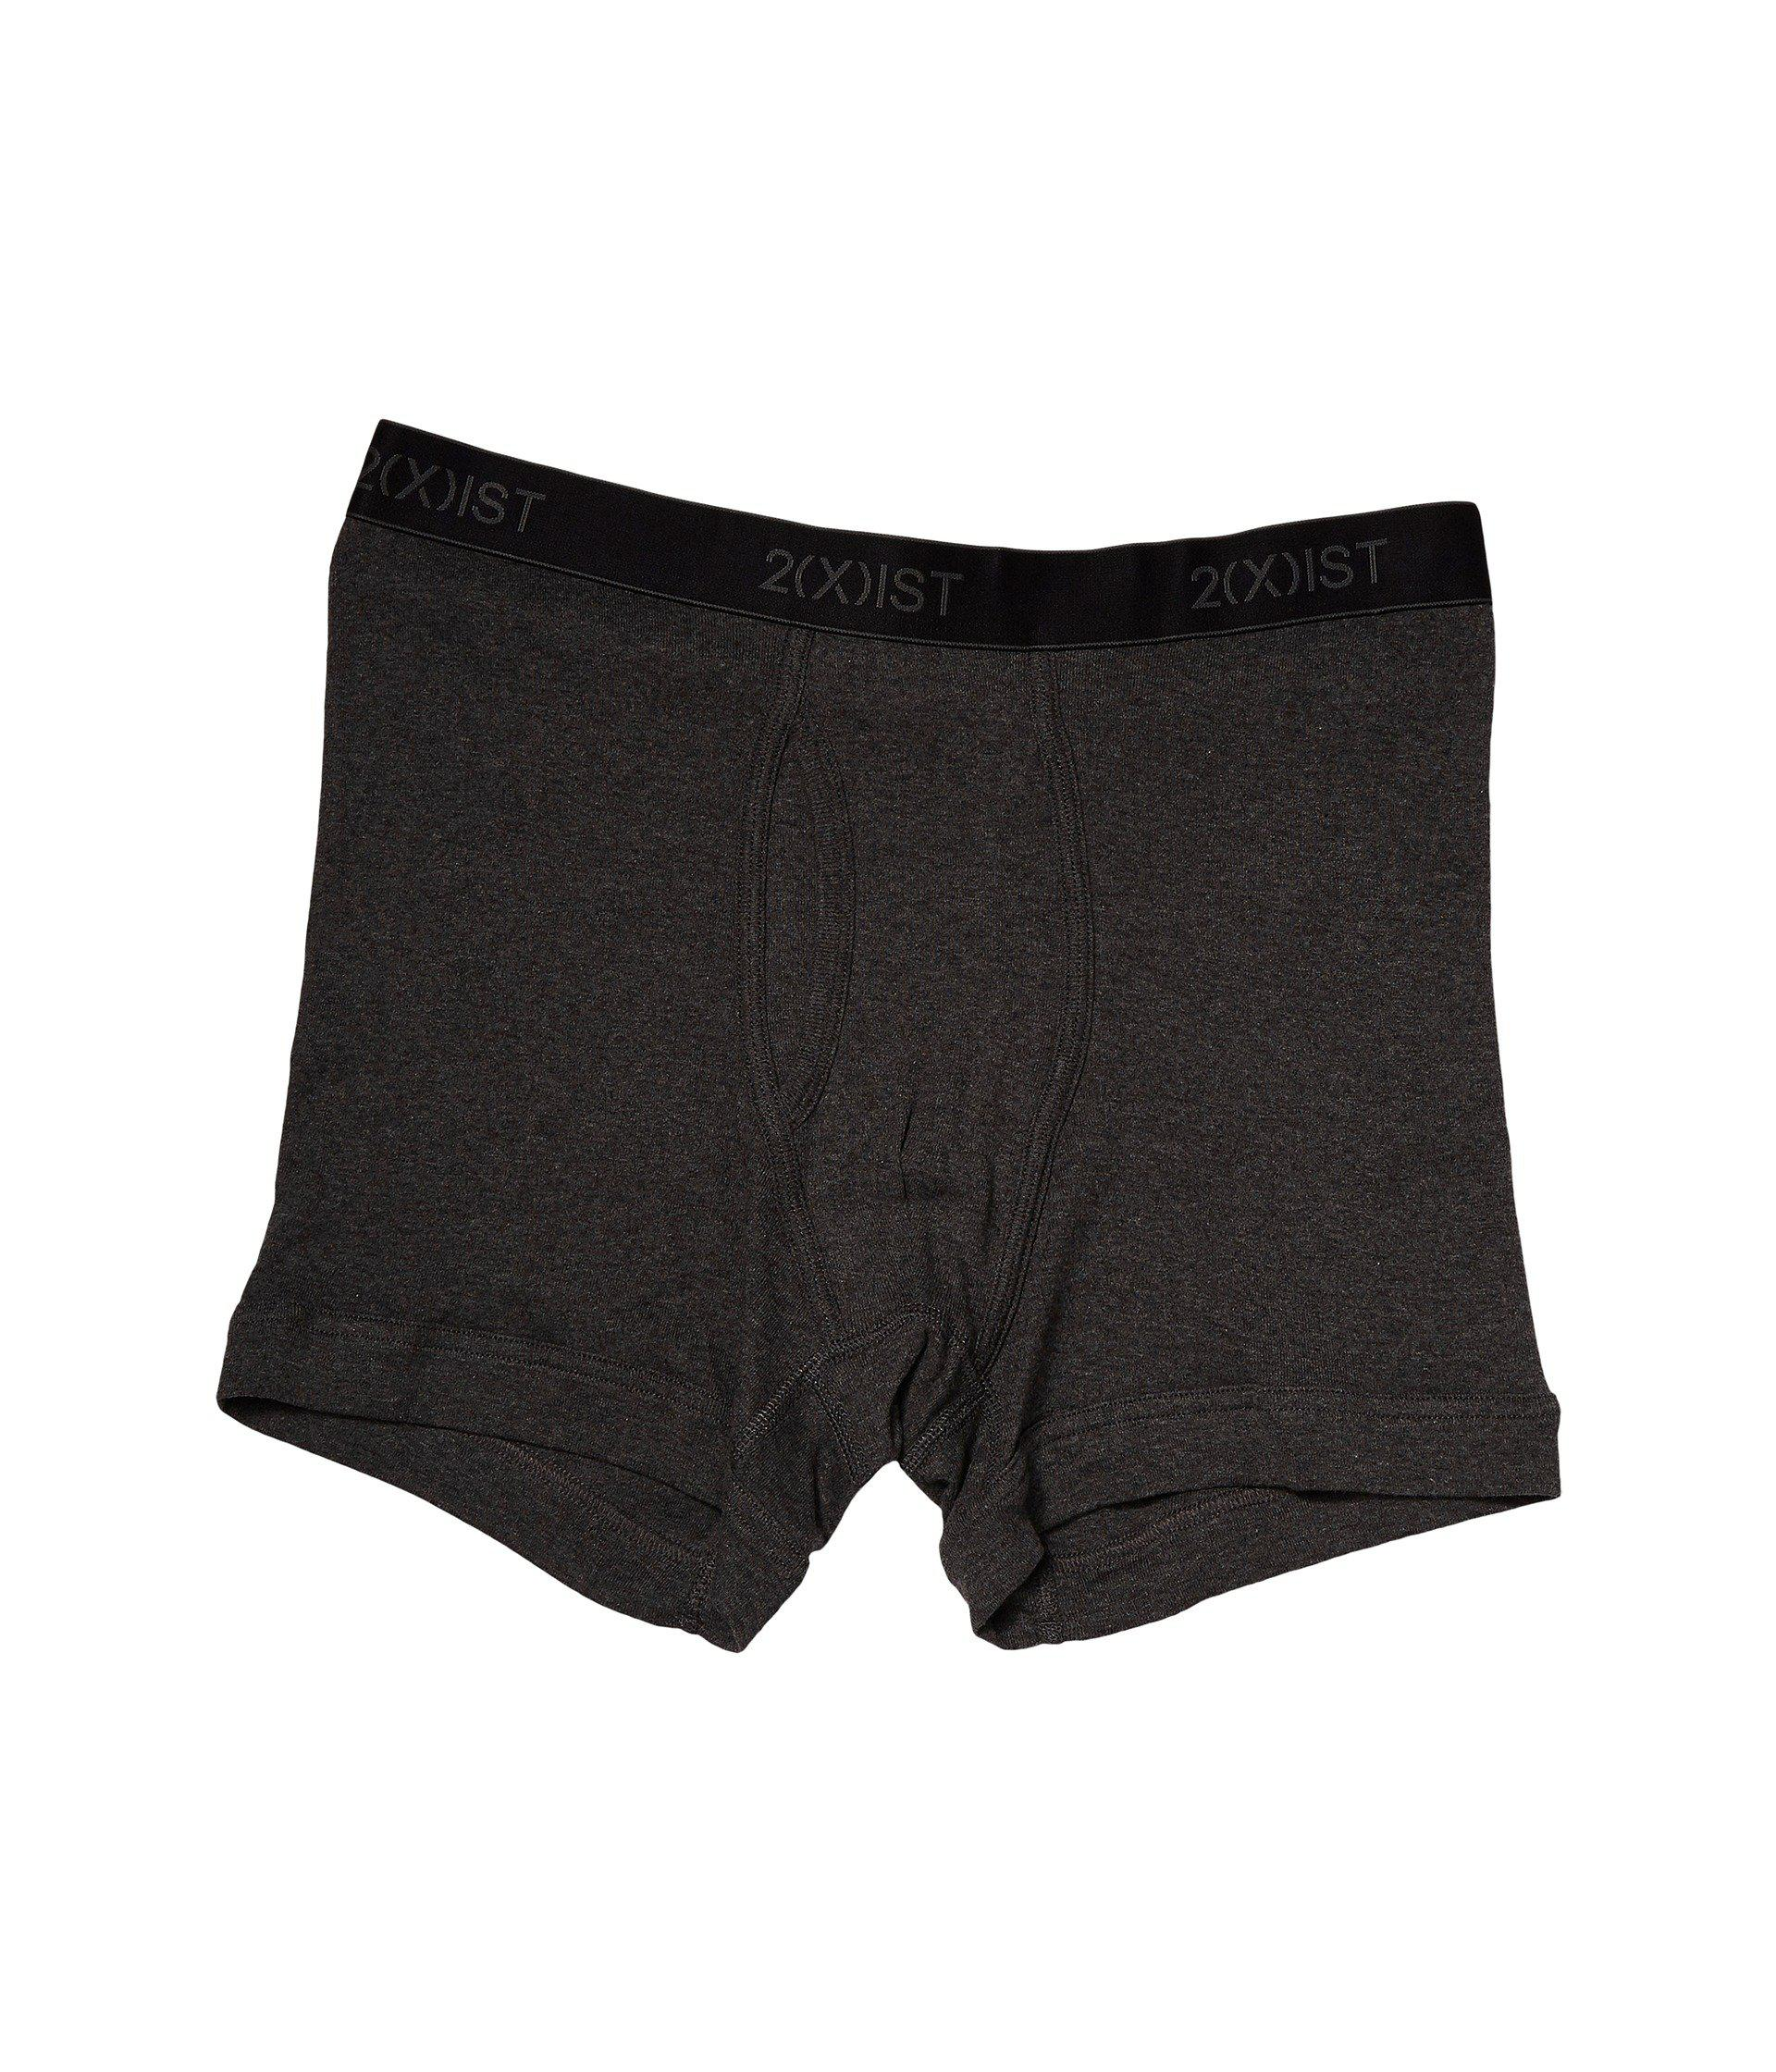 1a18e4e44a8 2xist 2(x)ist 3-pack Essential Boxer Briefs (black/grey Heather ...